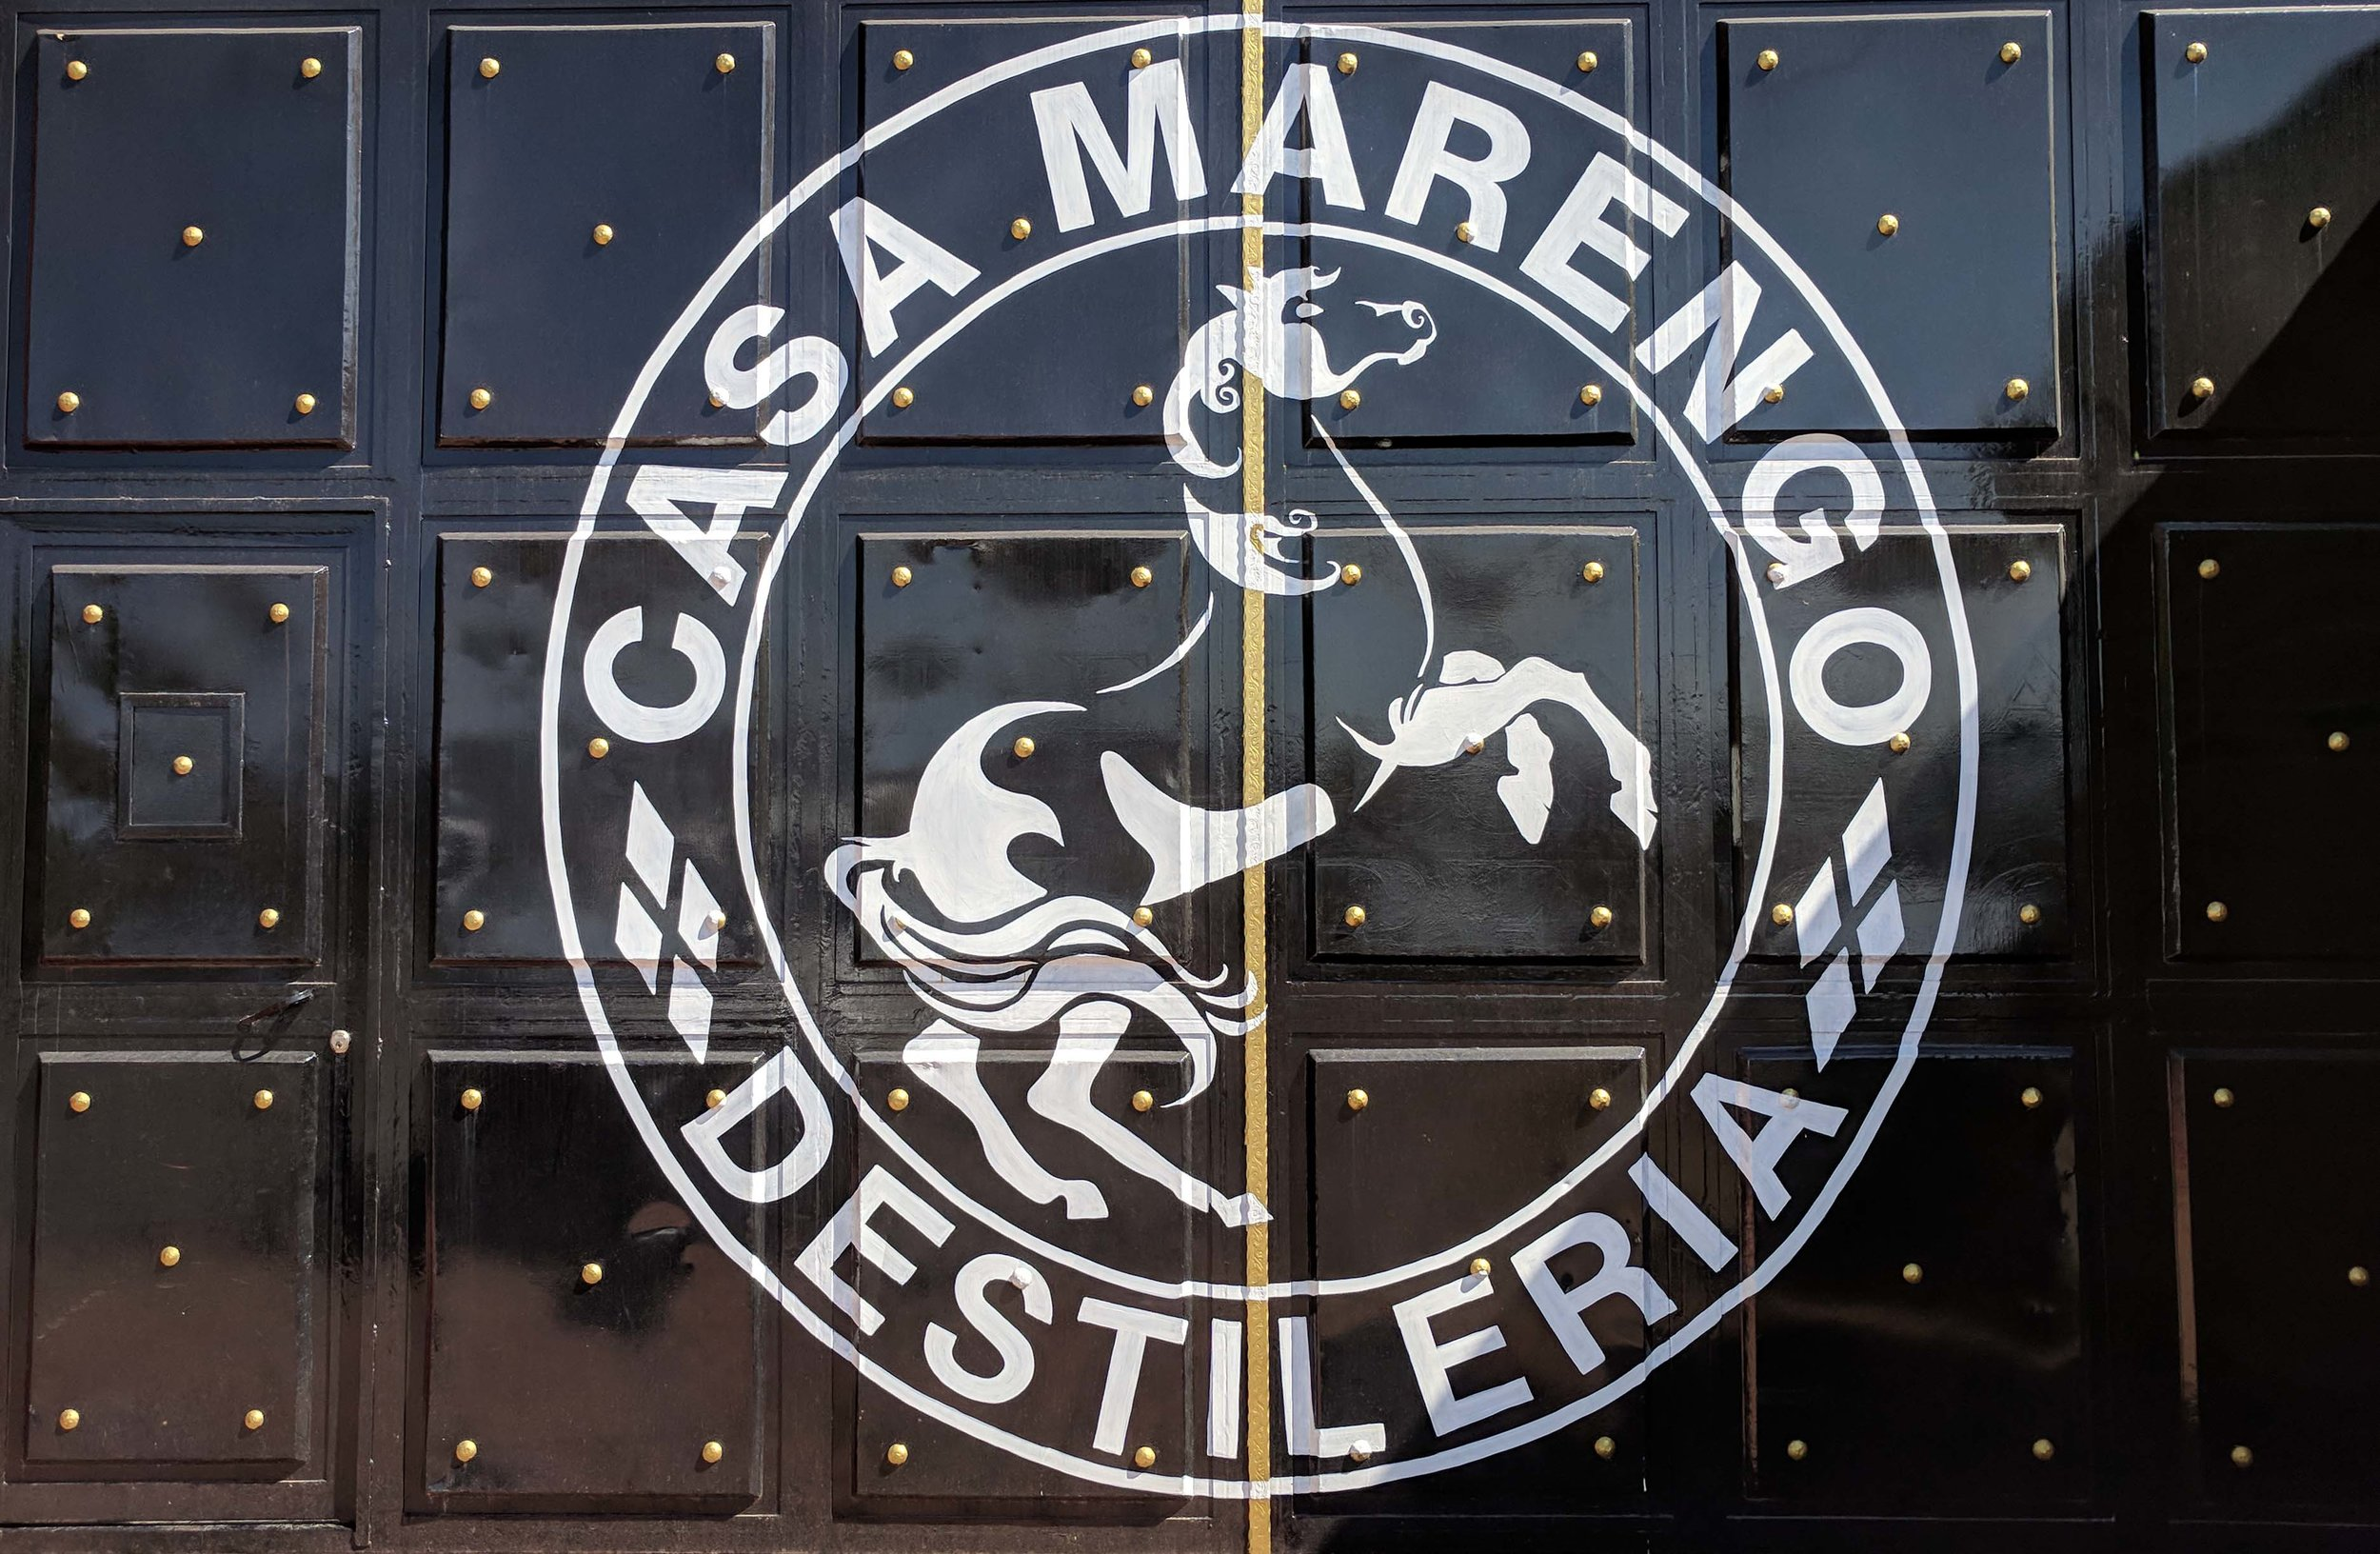 Our first stop at Casa Marengo